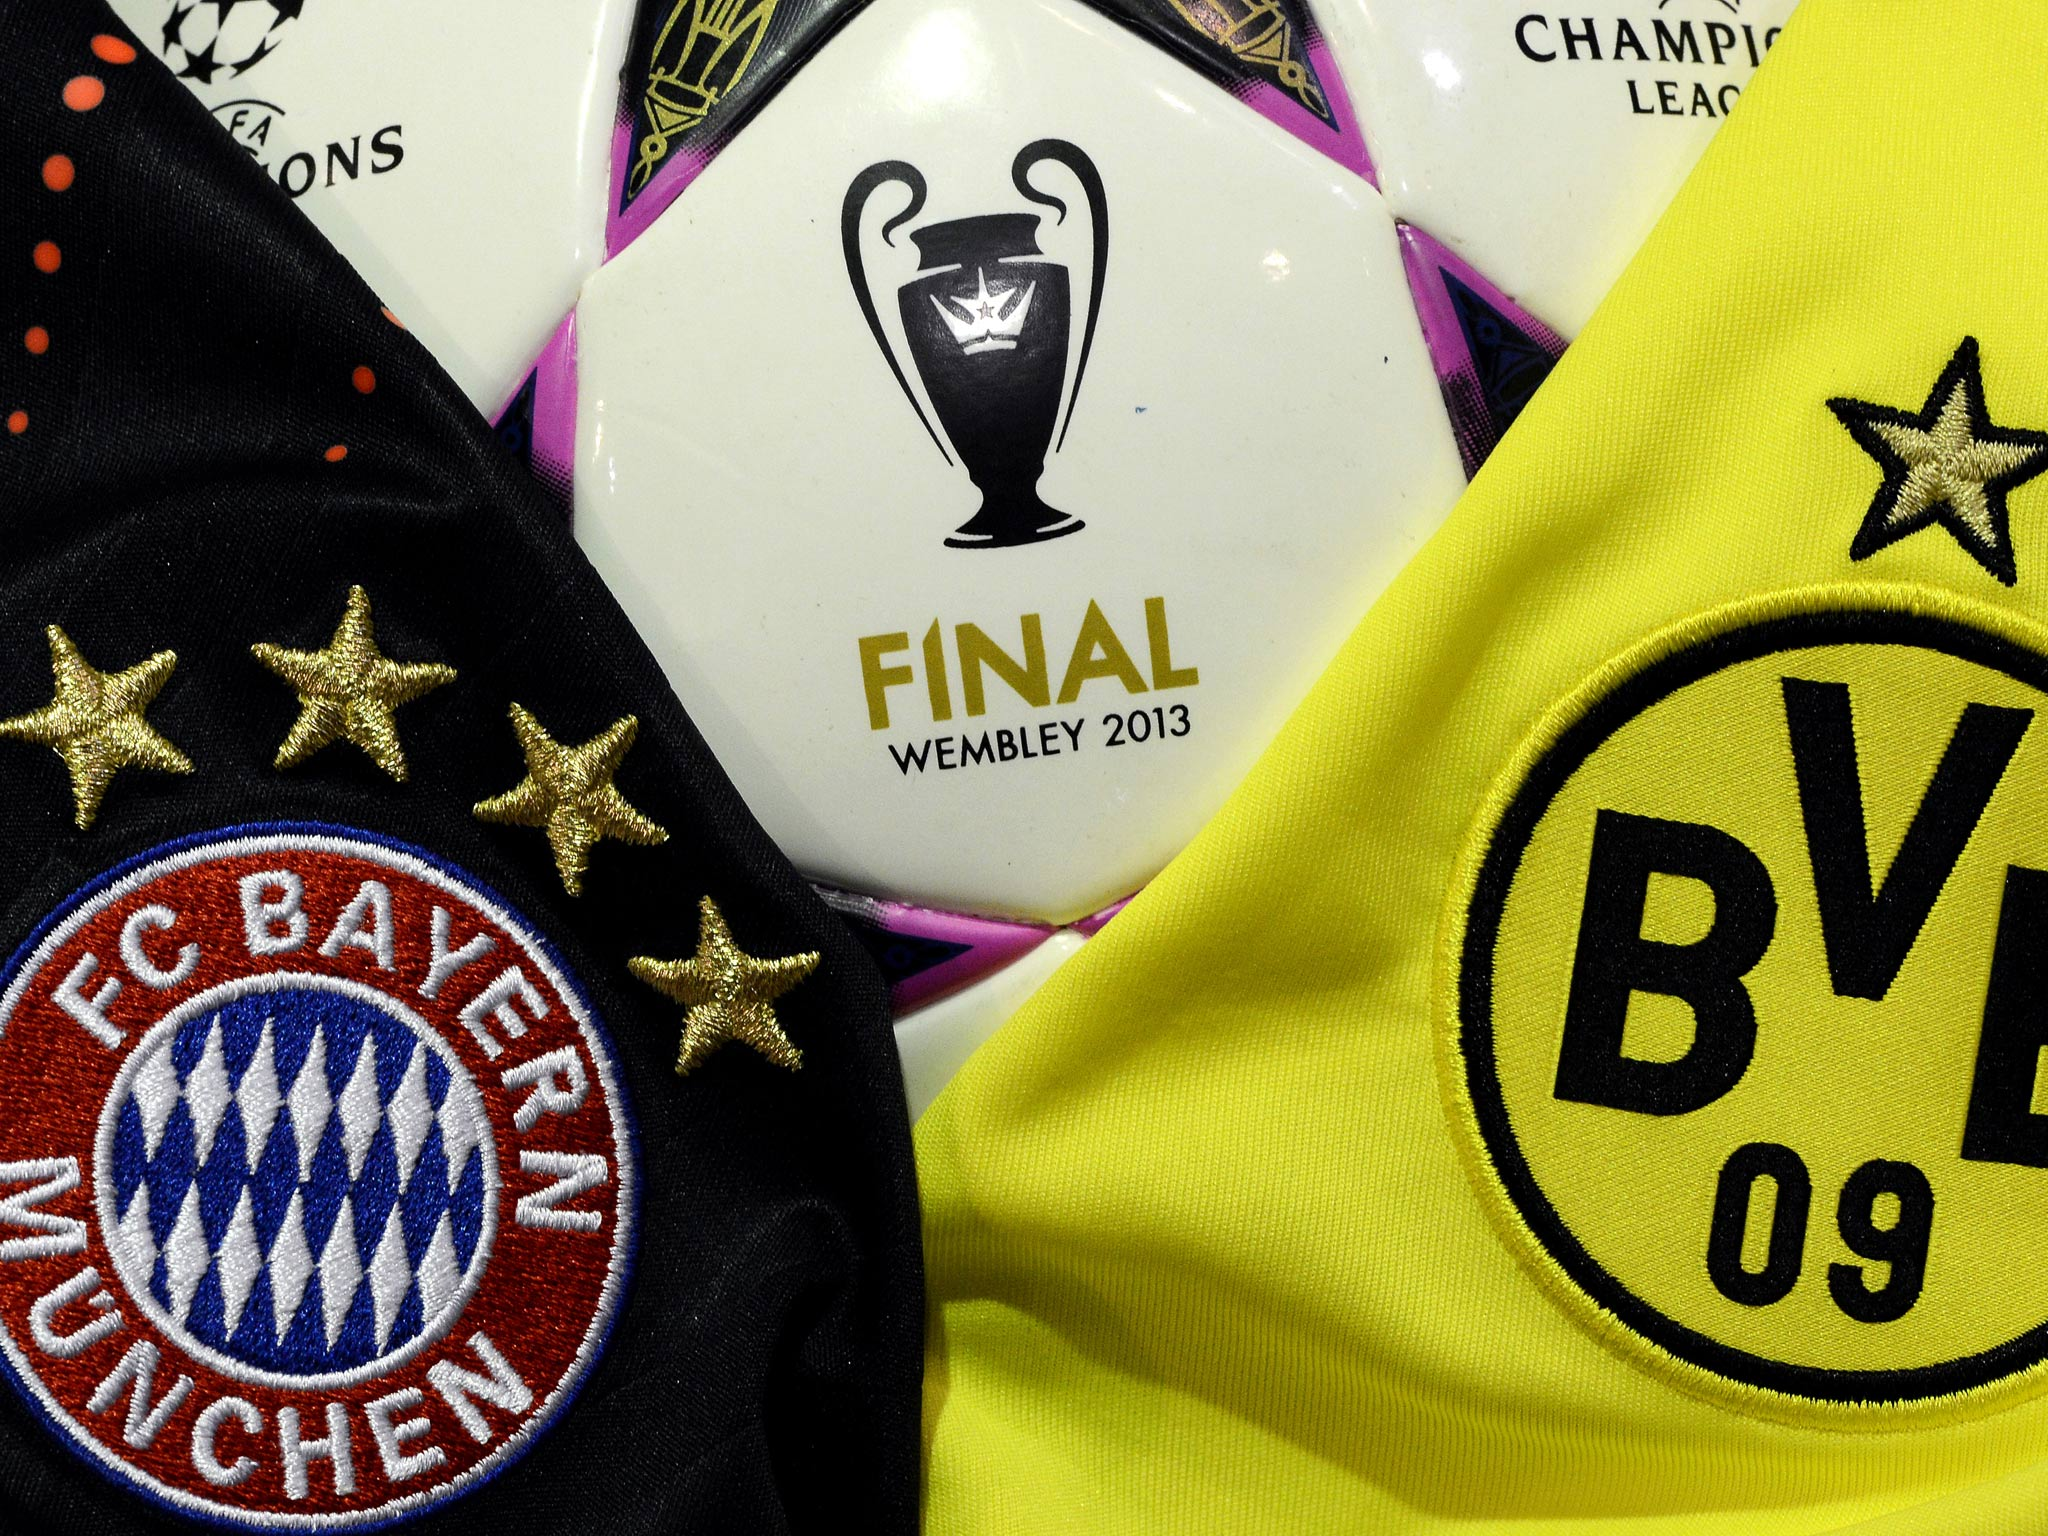 Champions League Final Borussia Dortmund Receive 250000 Ticket Applications For Wembley Meeting With Bayern Munich